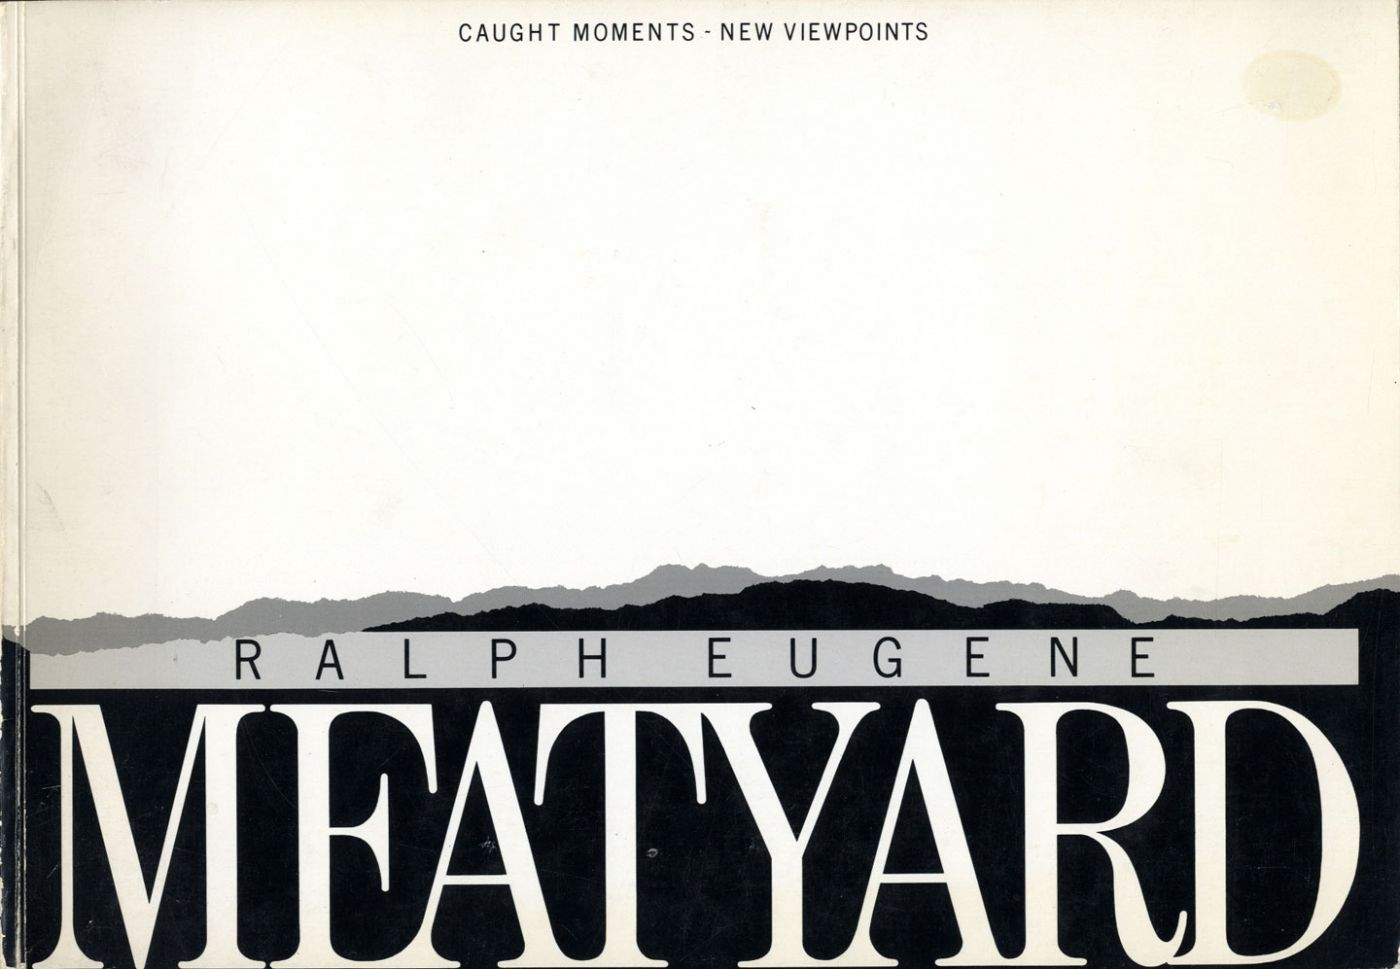 Ralph Eugene Meatyard: Caught Moments - New Viewpoints